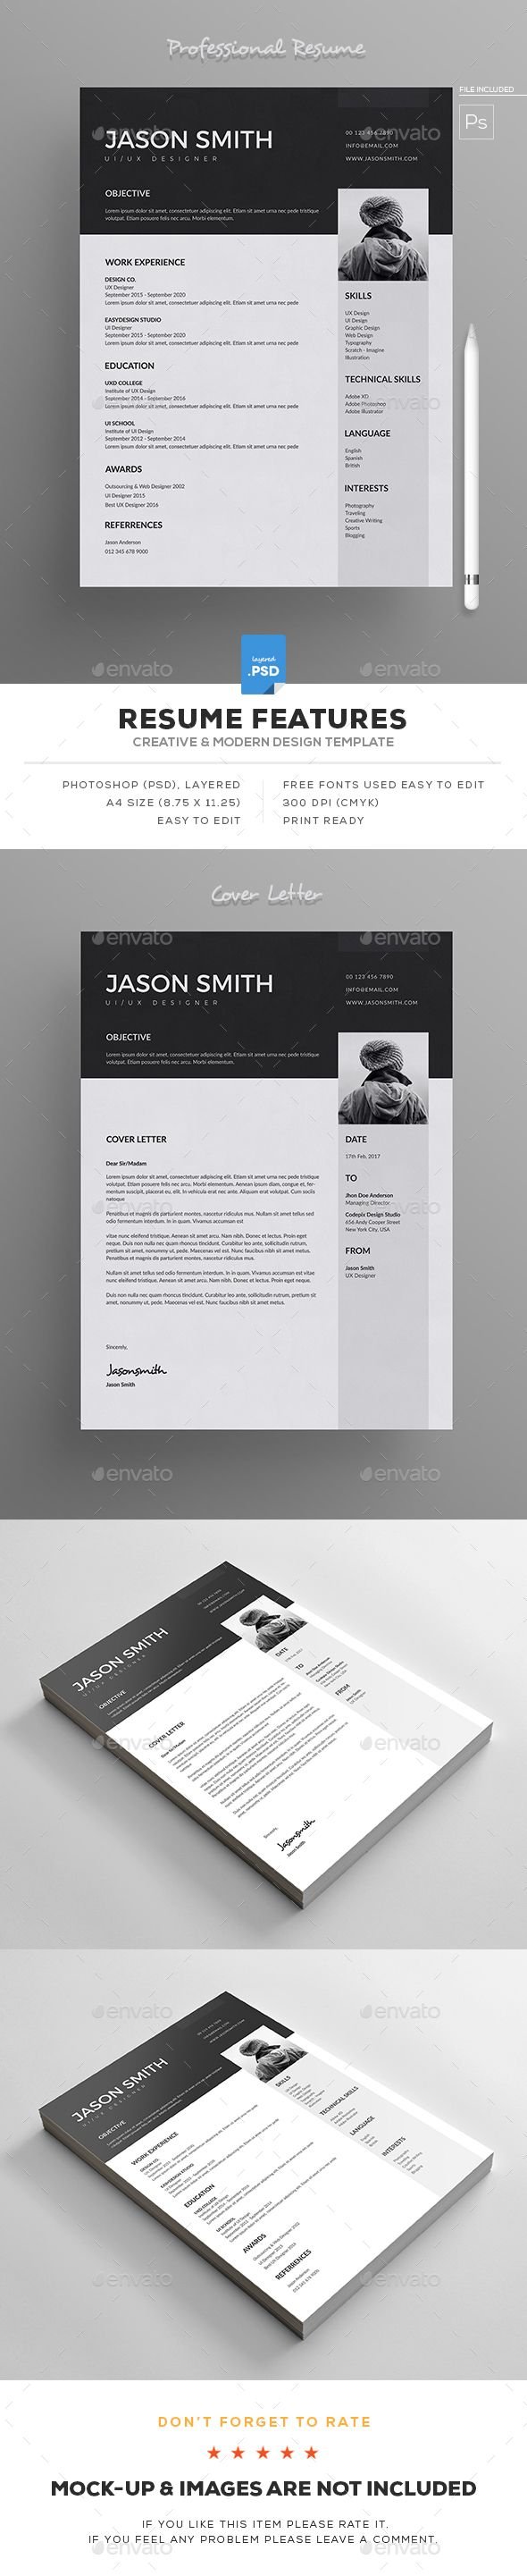 Resume   Template  Cv template and Resume cv  Resume   Resumes Stationery Download here  https   graphicriver net item  resume 19311193 ref alena994